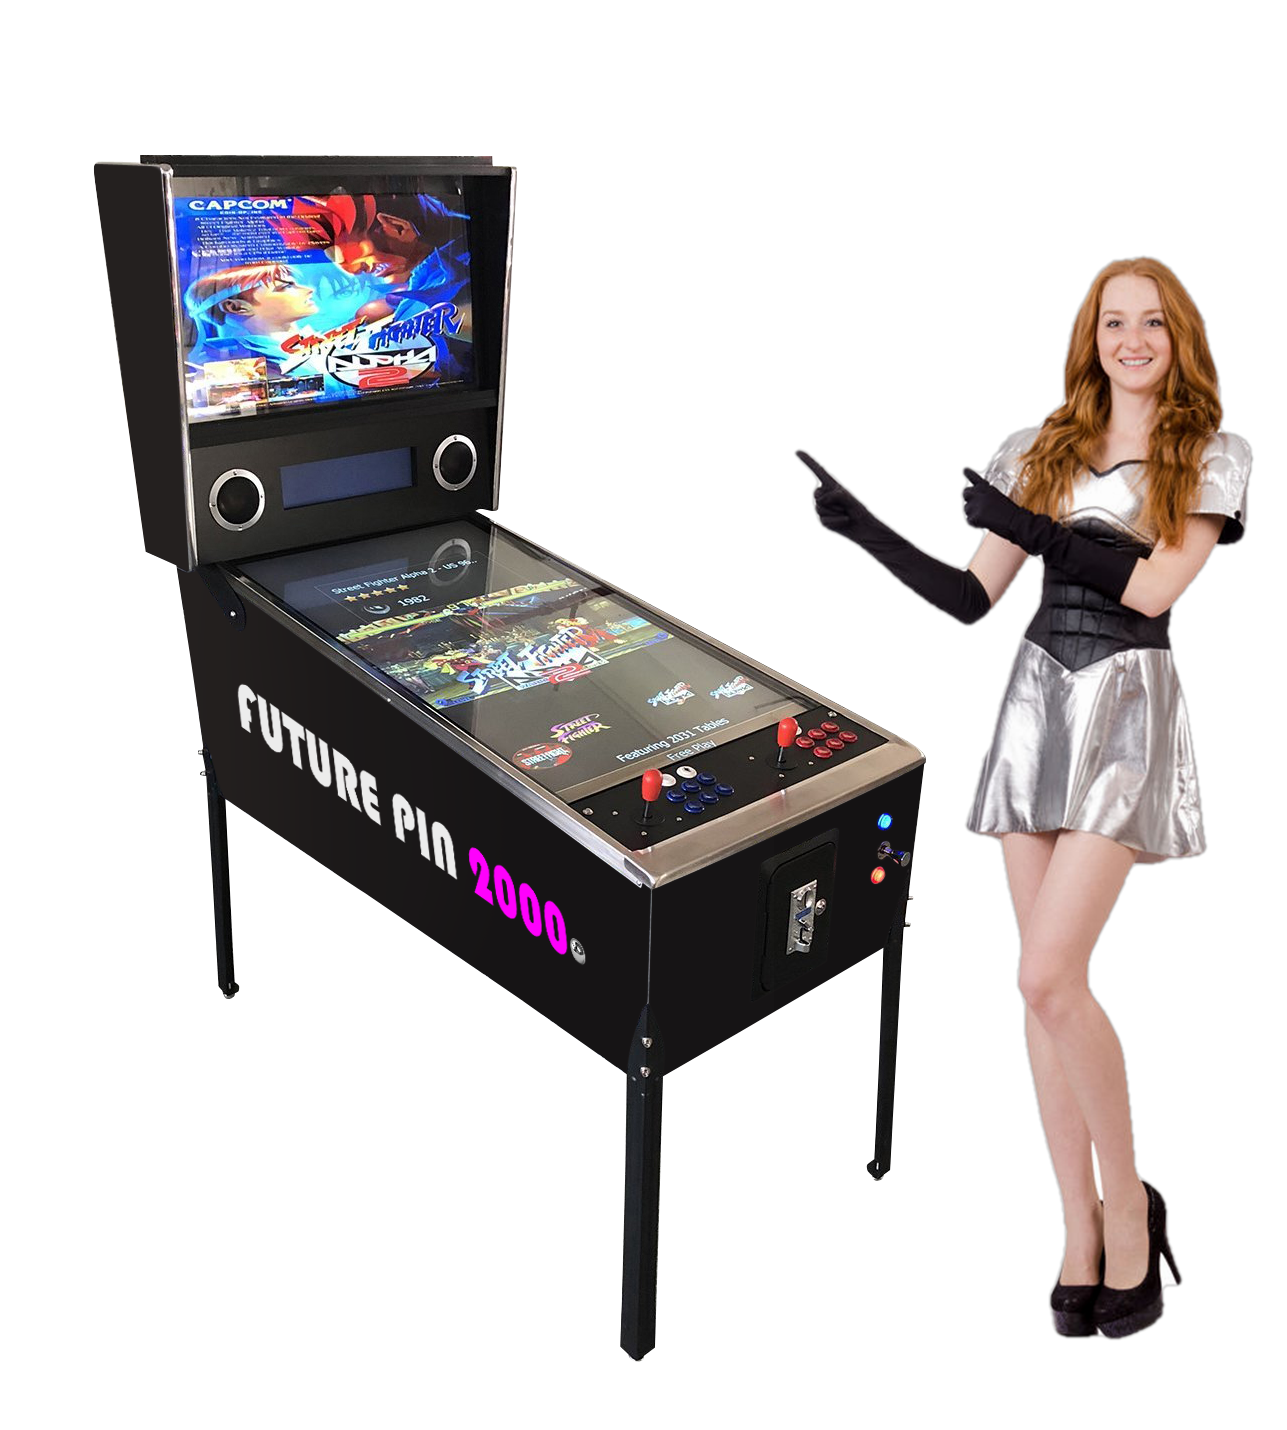 FUTURE PIN 2000™ Virtual Pinball Machine Includes Over 2,000 Games! Large-42